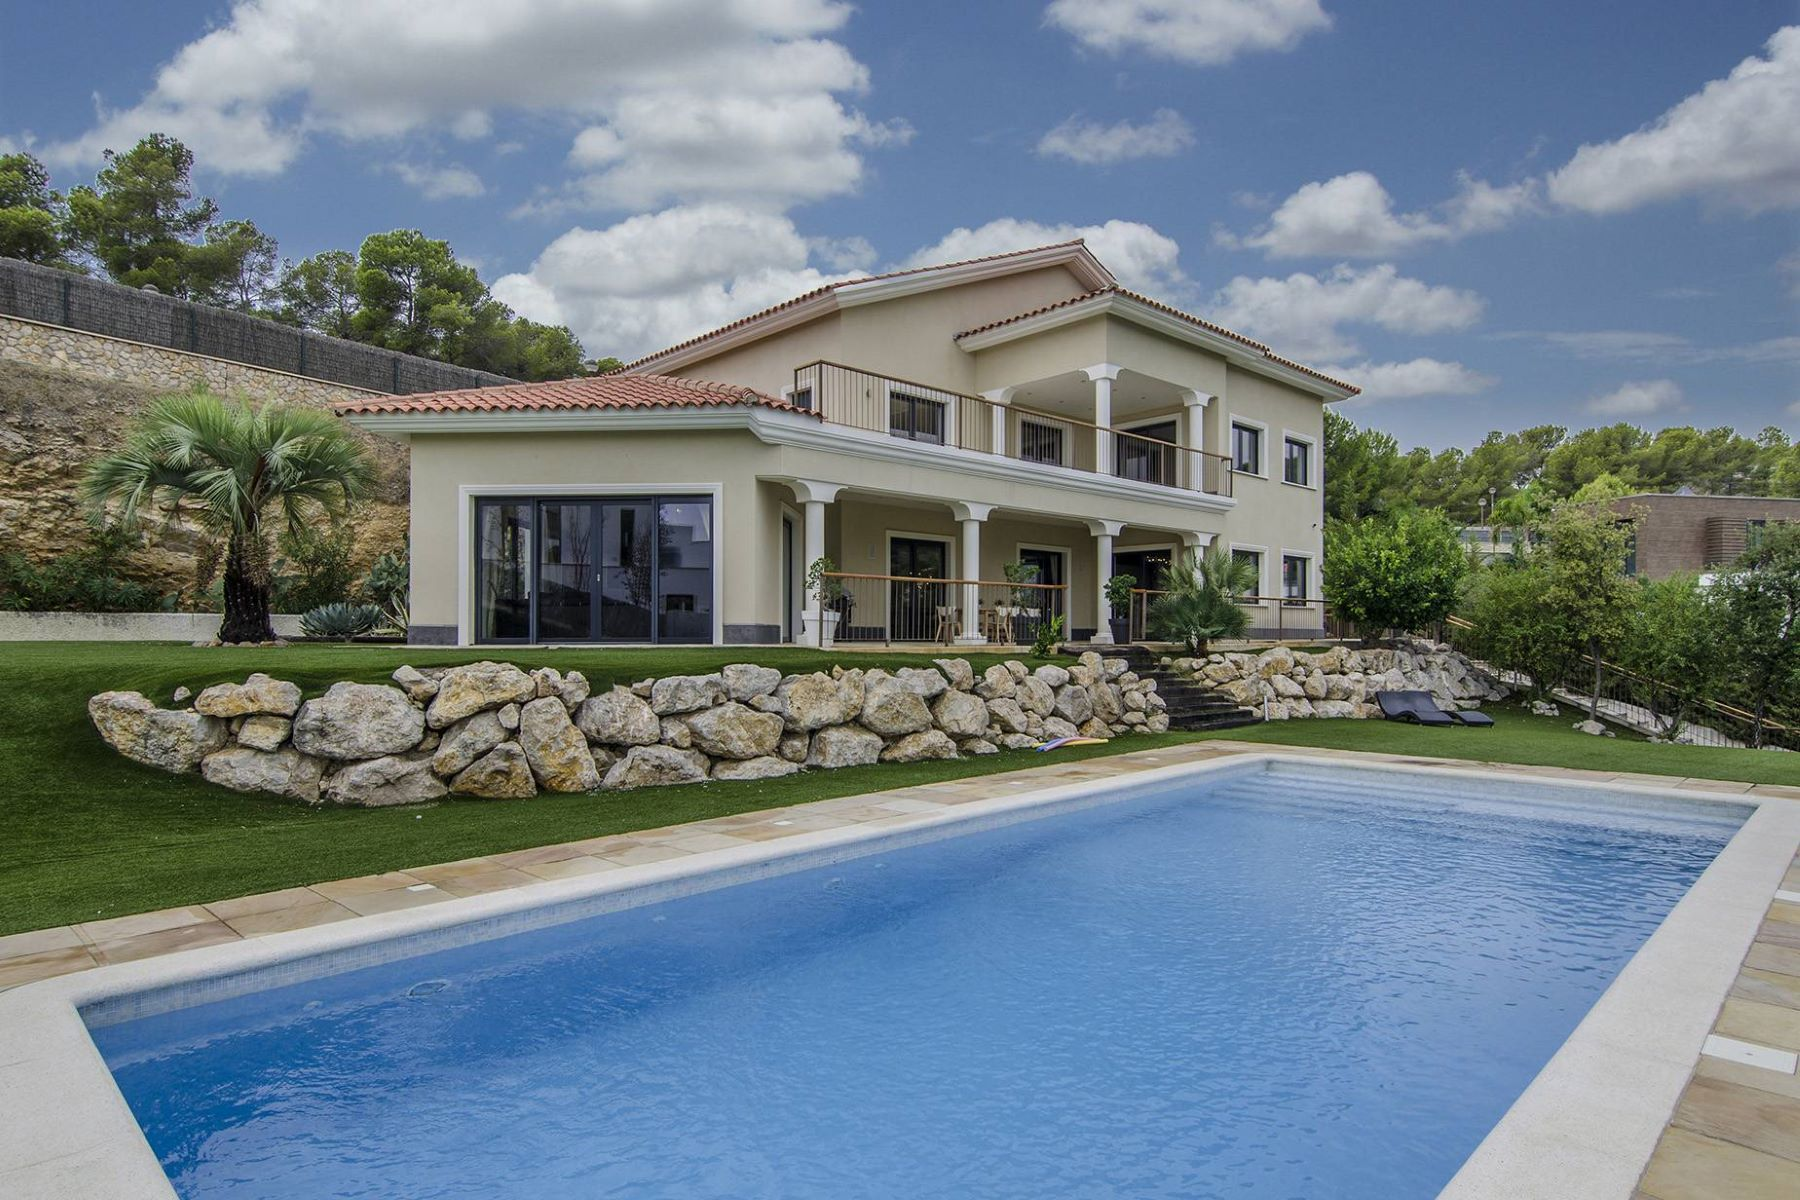 Single Family Home for Sale at Luxury House For Sale in Can Girona Sitges, Barcelona, 08870 Spain